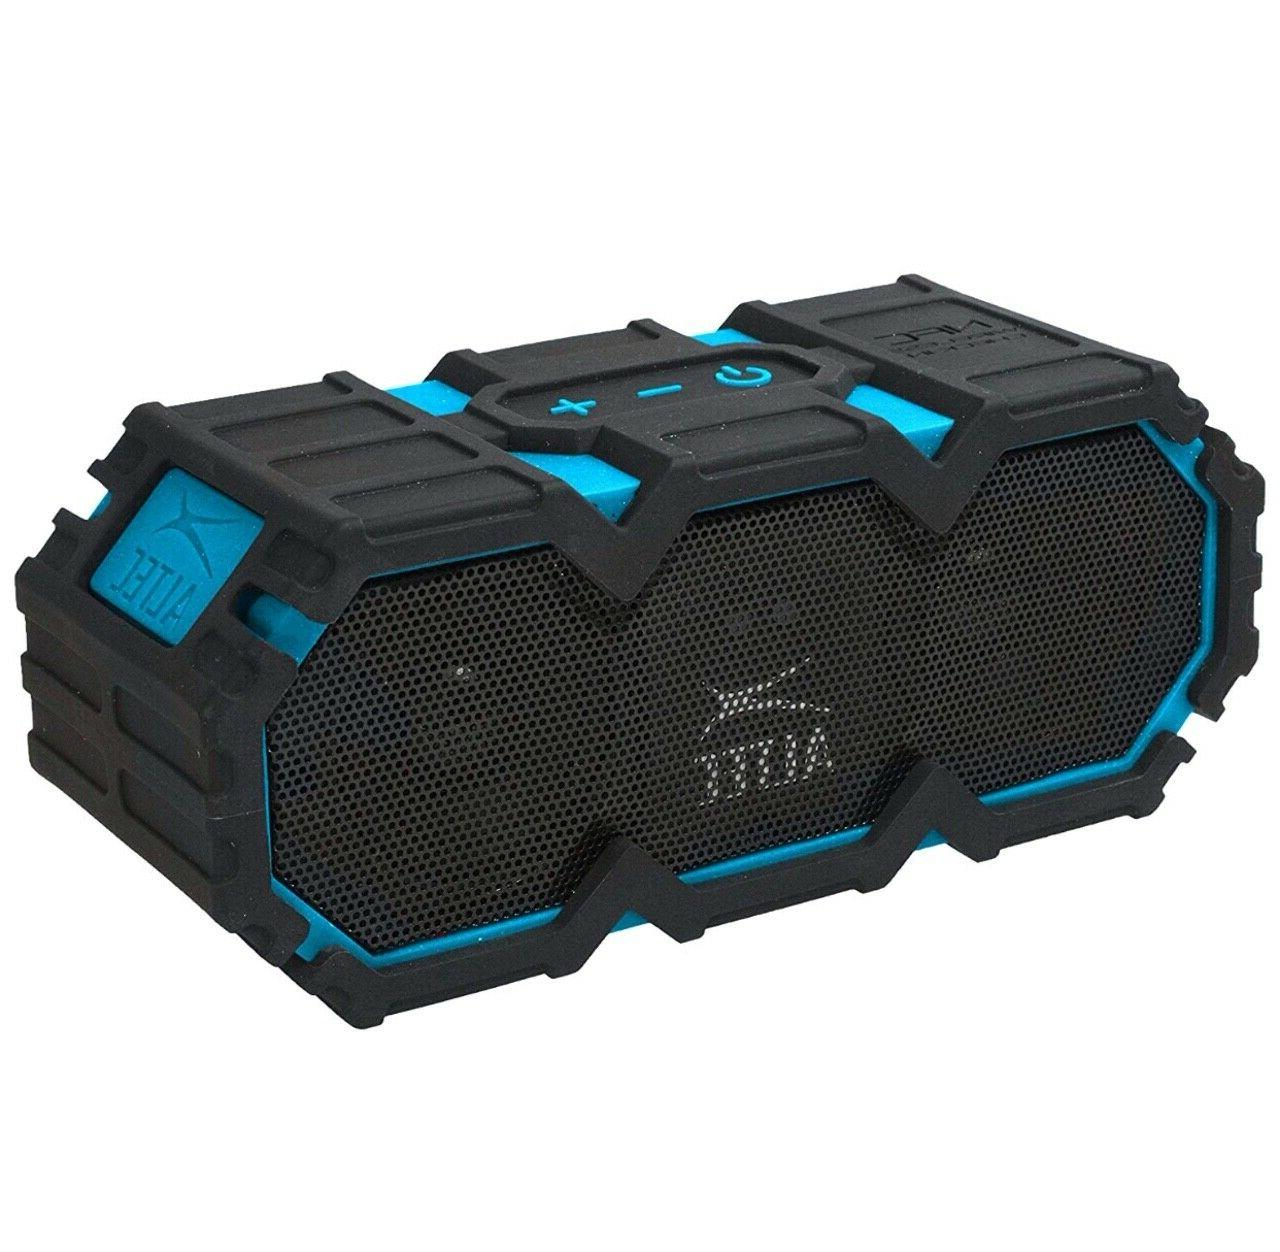 imw575 life jacket bluetooth speaker waterproof outdoor